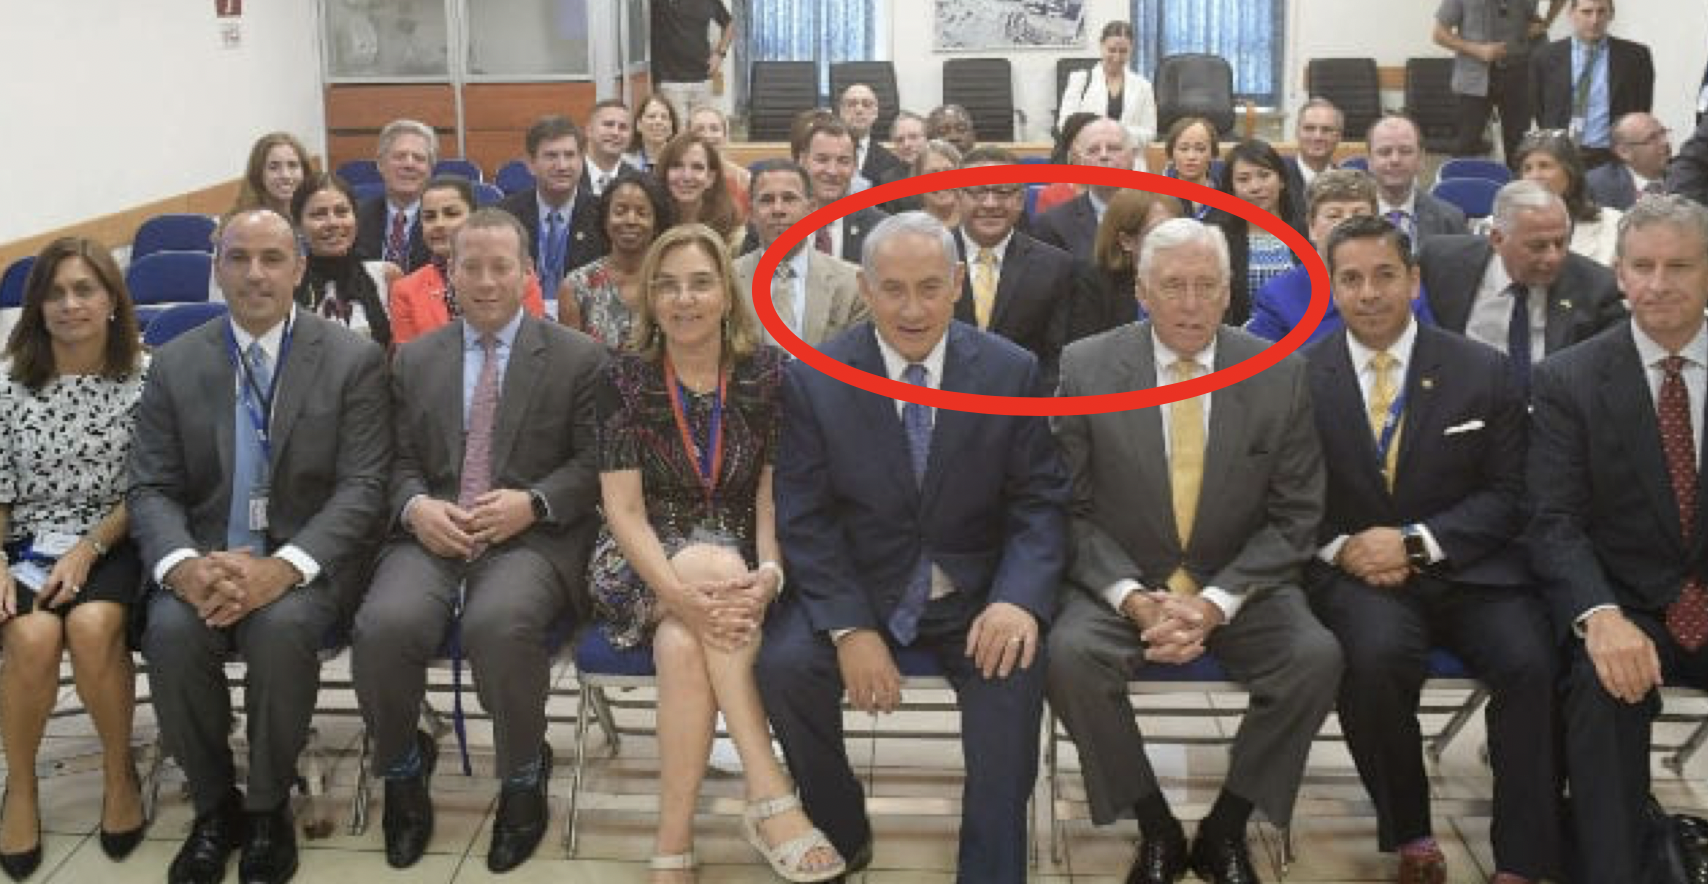 Rep. Steny Hoyer (D-XX) sits next to Israeli Prime Minister Benjamin Netanyahu during the AIPAC trip for freshman Congress members in August 2017. (Saguy Moran)